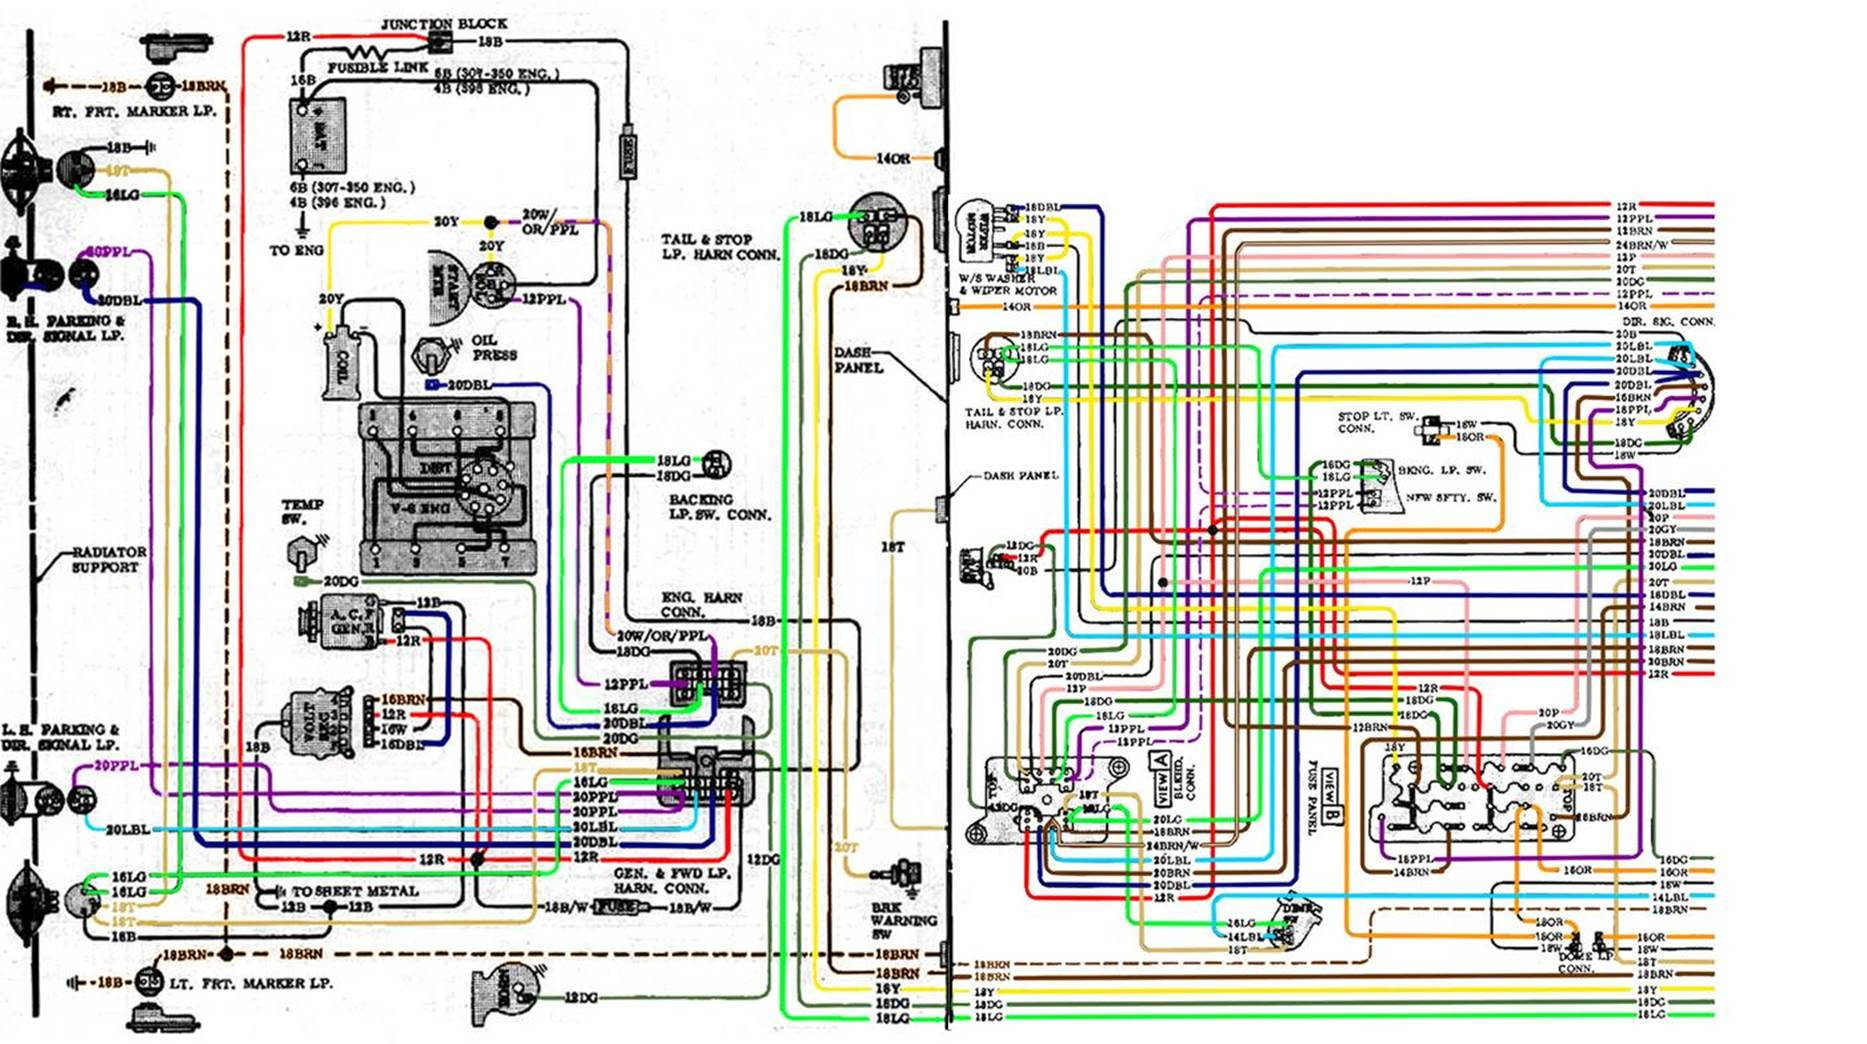 Swell Chevy Nova Wiring Harness Basic Electronics Wiring Diagram Wiring Database Gramgelartorg